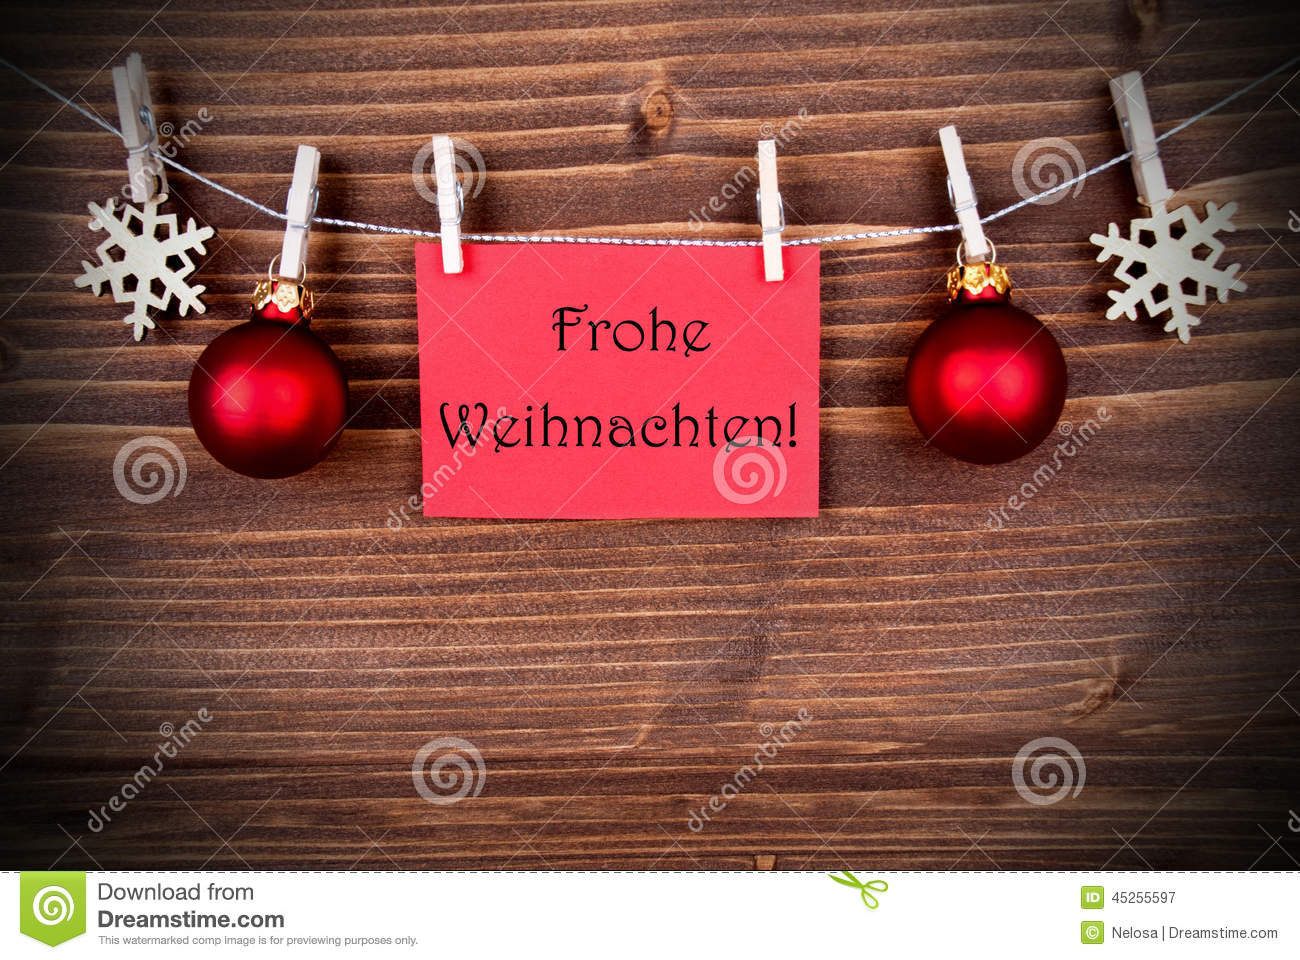 red banner with frohe weihnachten stock image image of. Black Bedroom Furniture Sets. Home Design Ideas